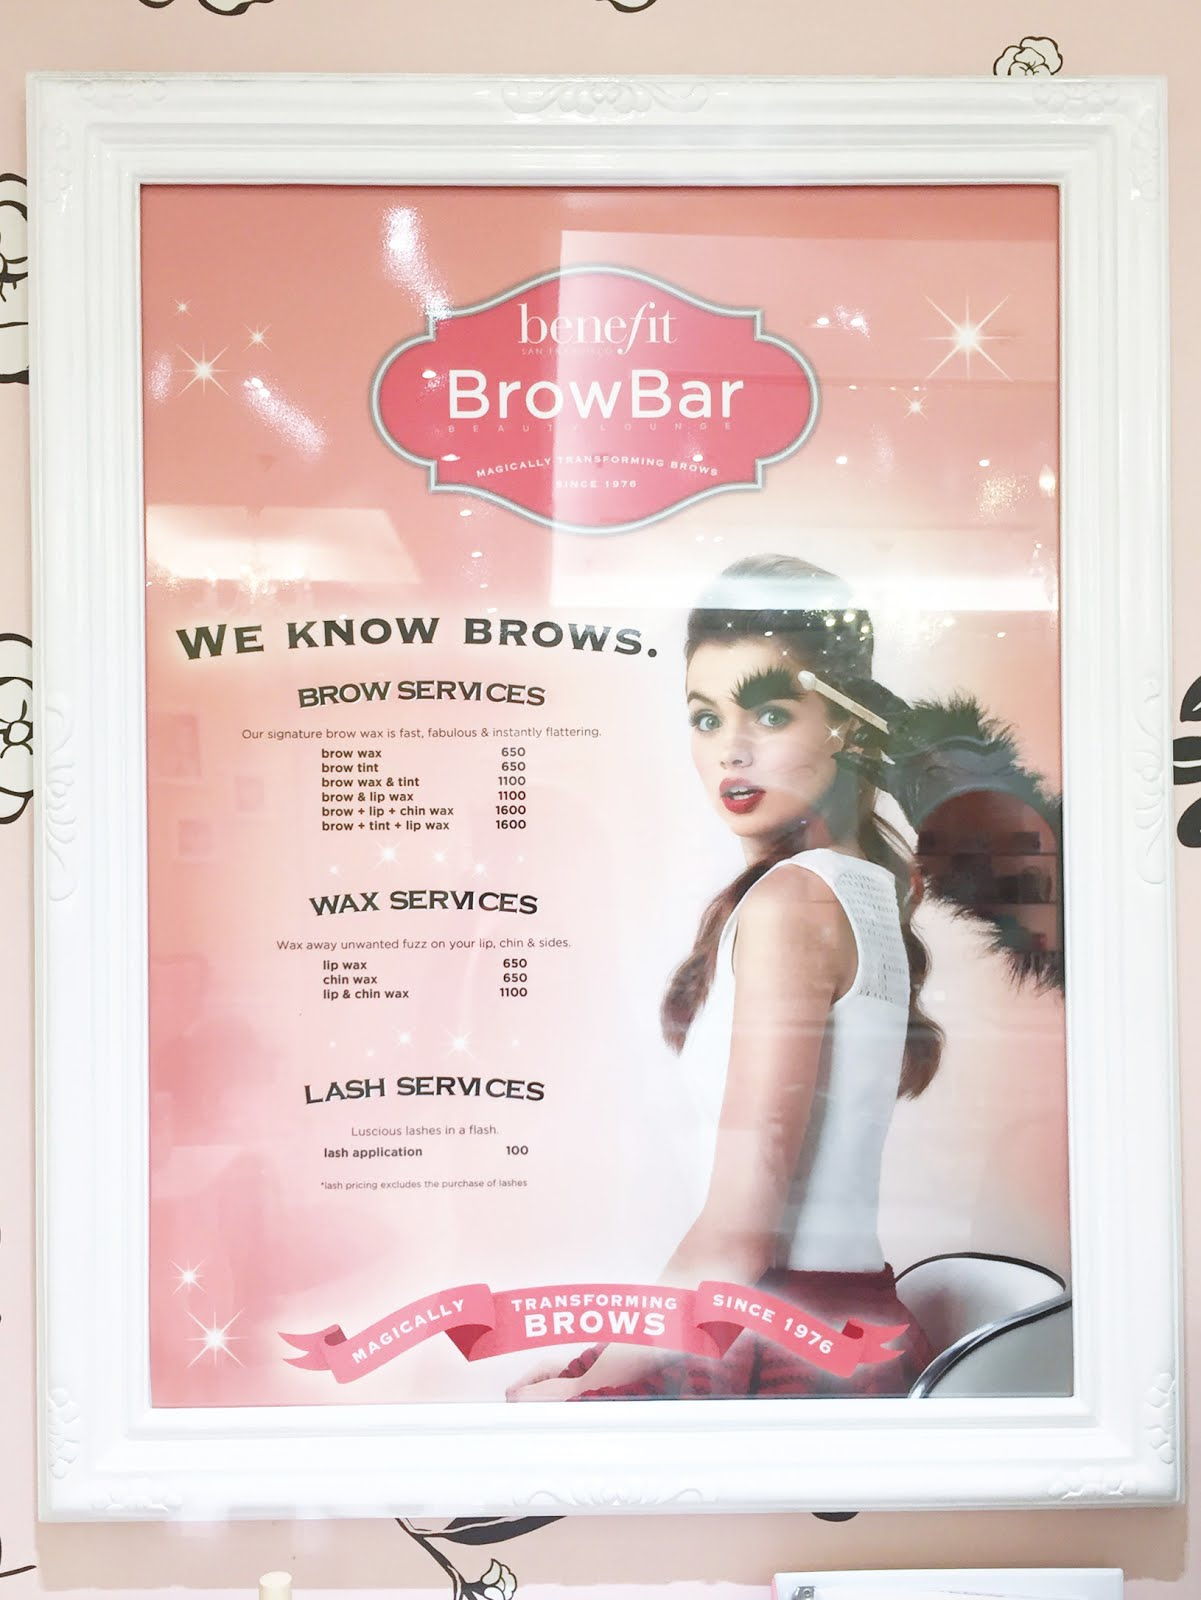 Benefit Cosmetics Have Brow Mazing Eyebrows Theres More To Mica